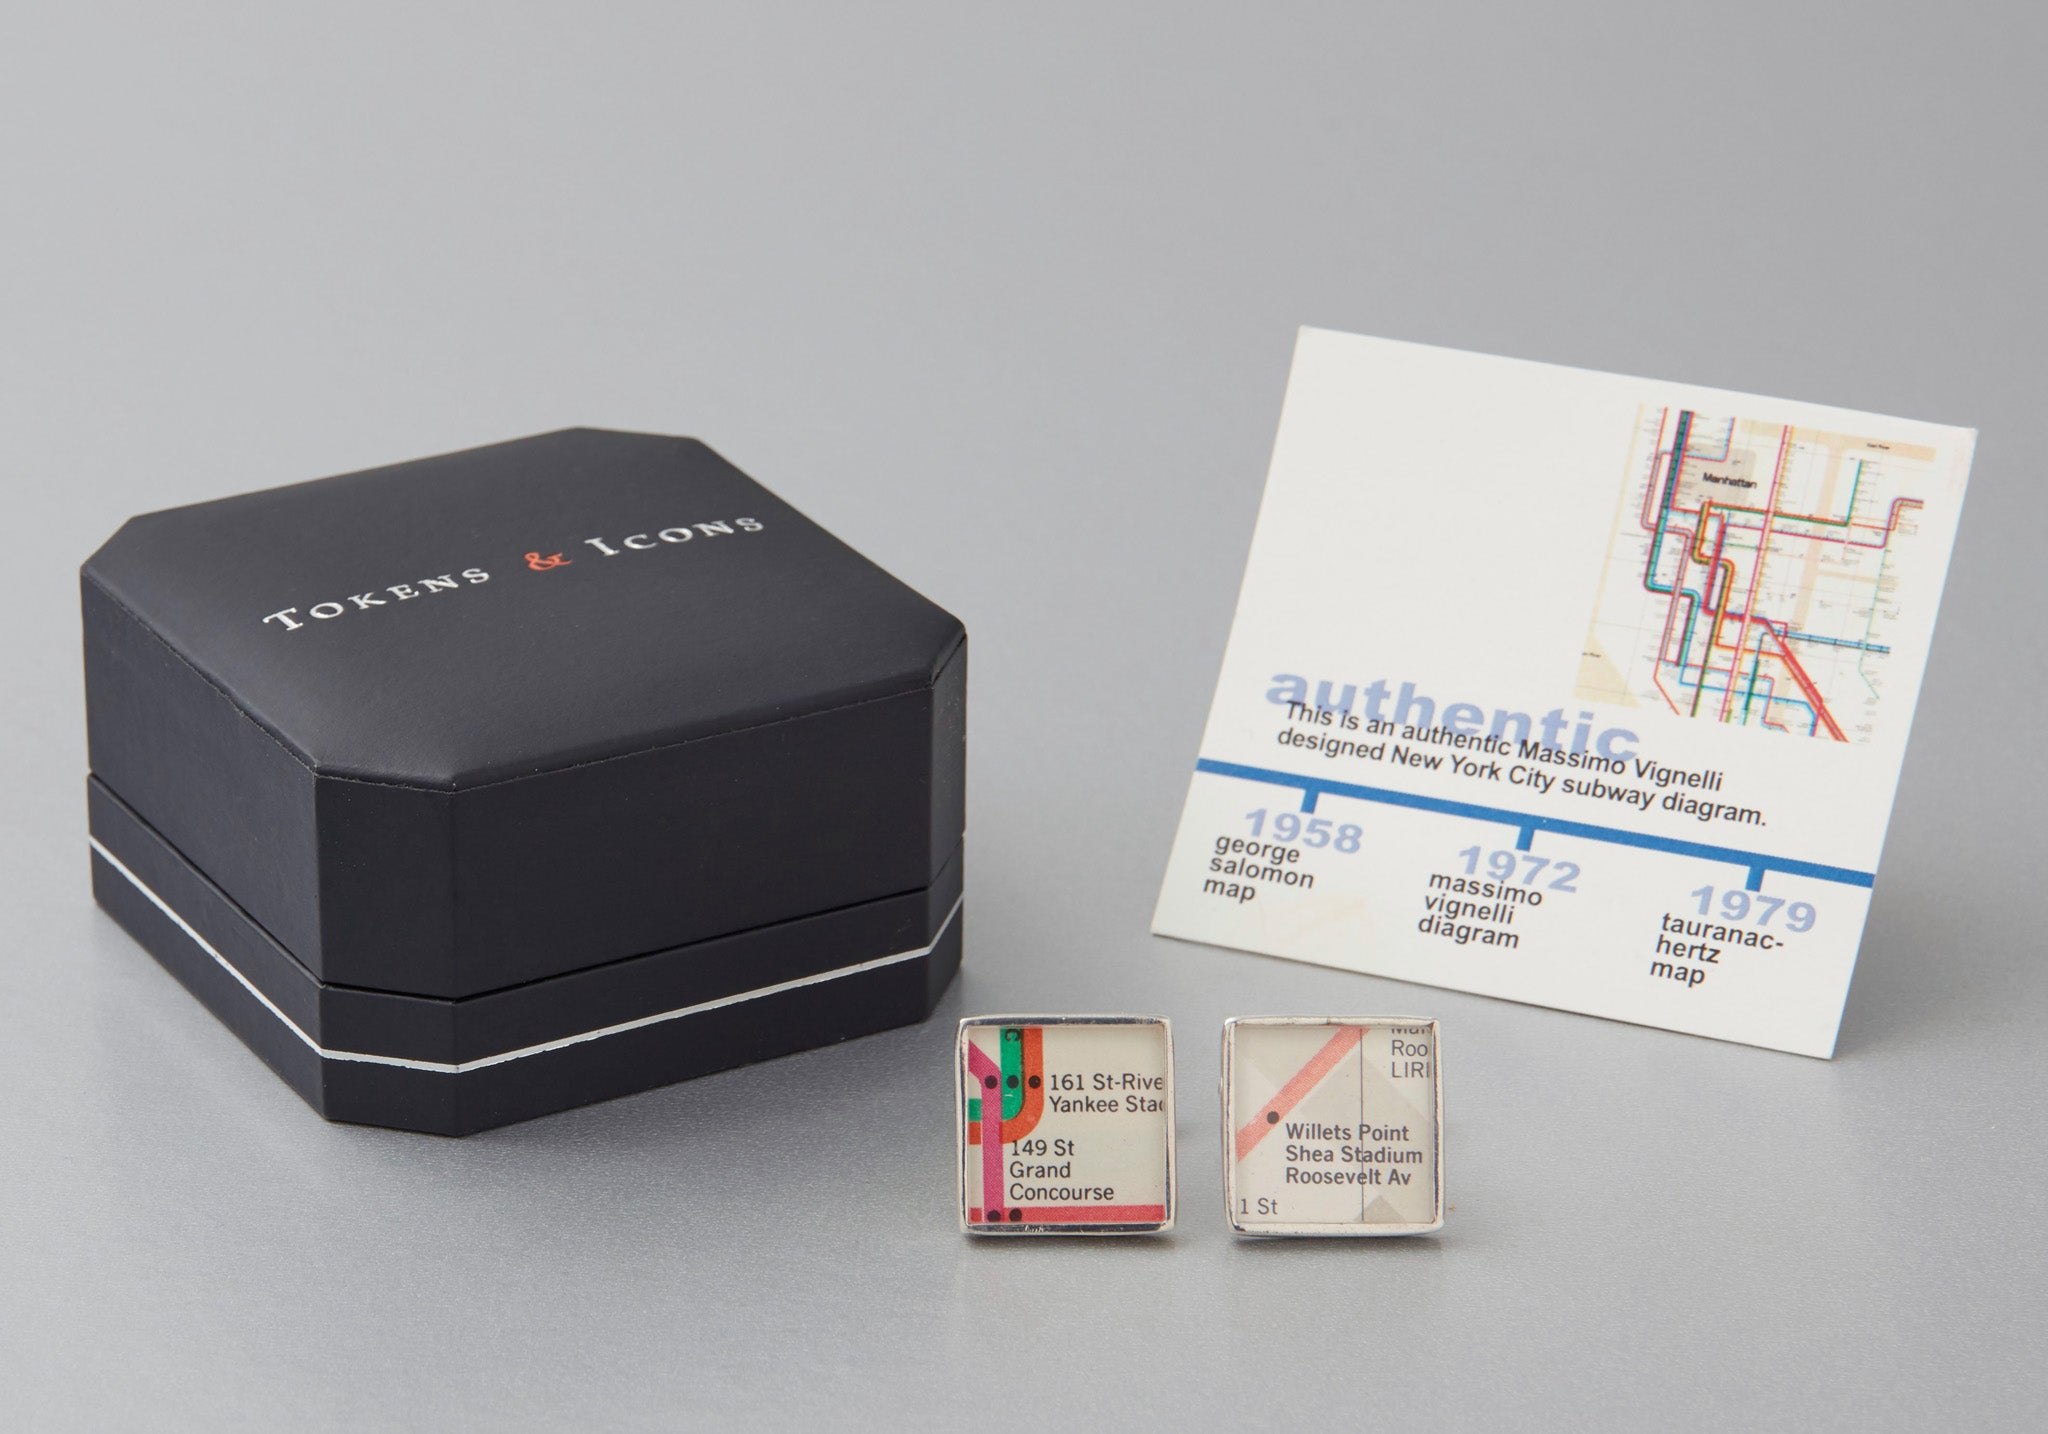 NEW YORK SUBWAY VIGNELLI DIAGRAM CUFF LINKS